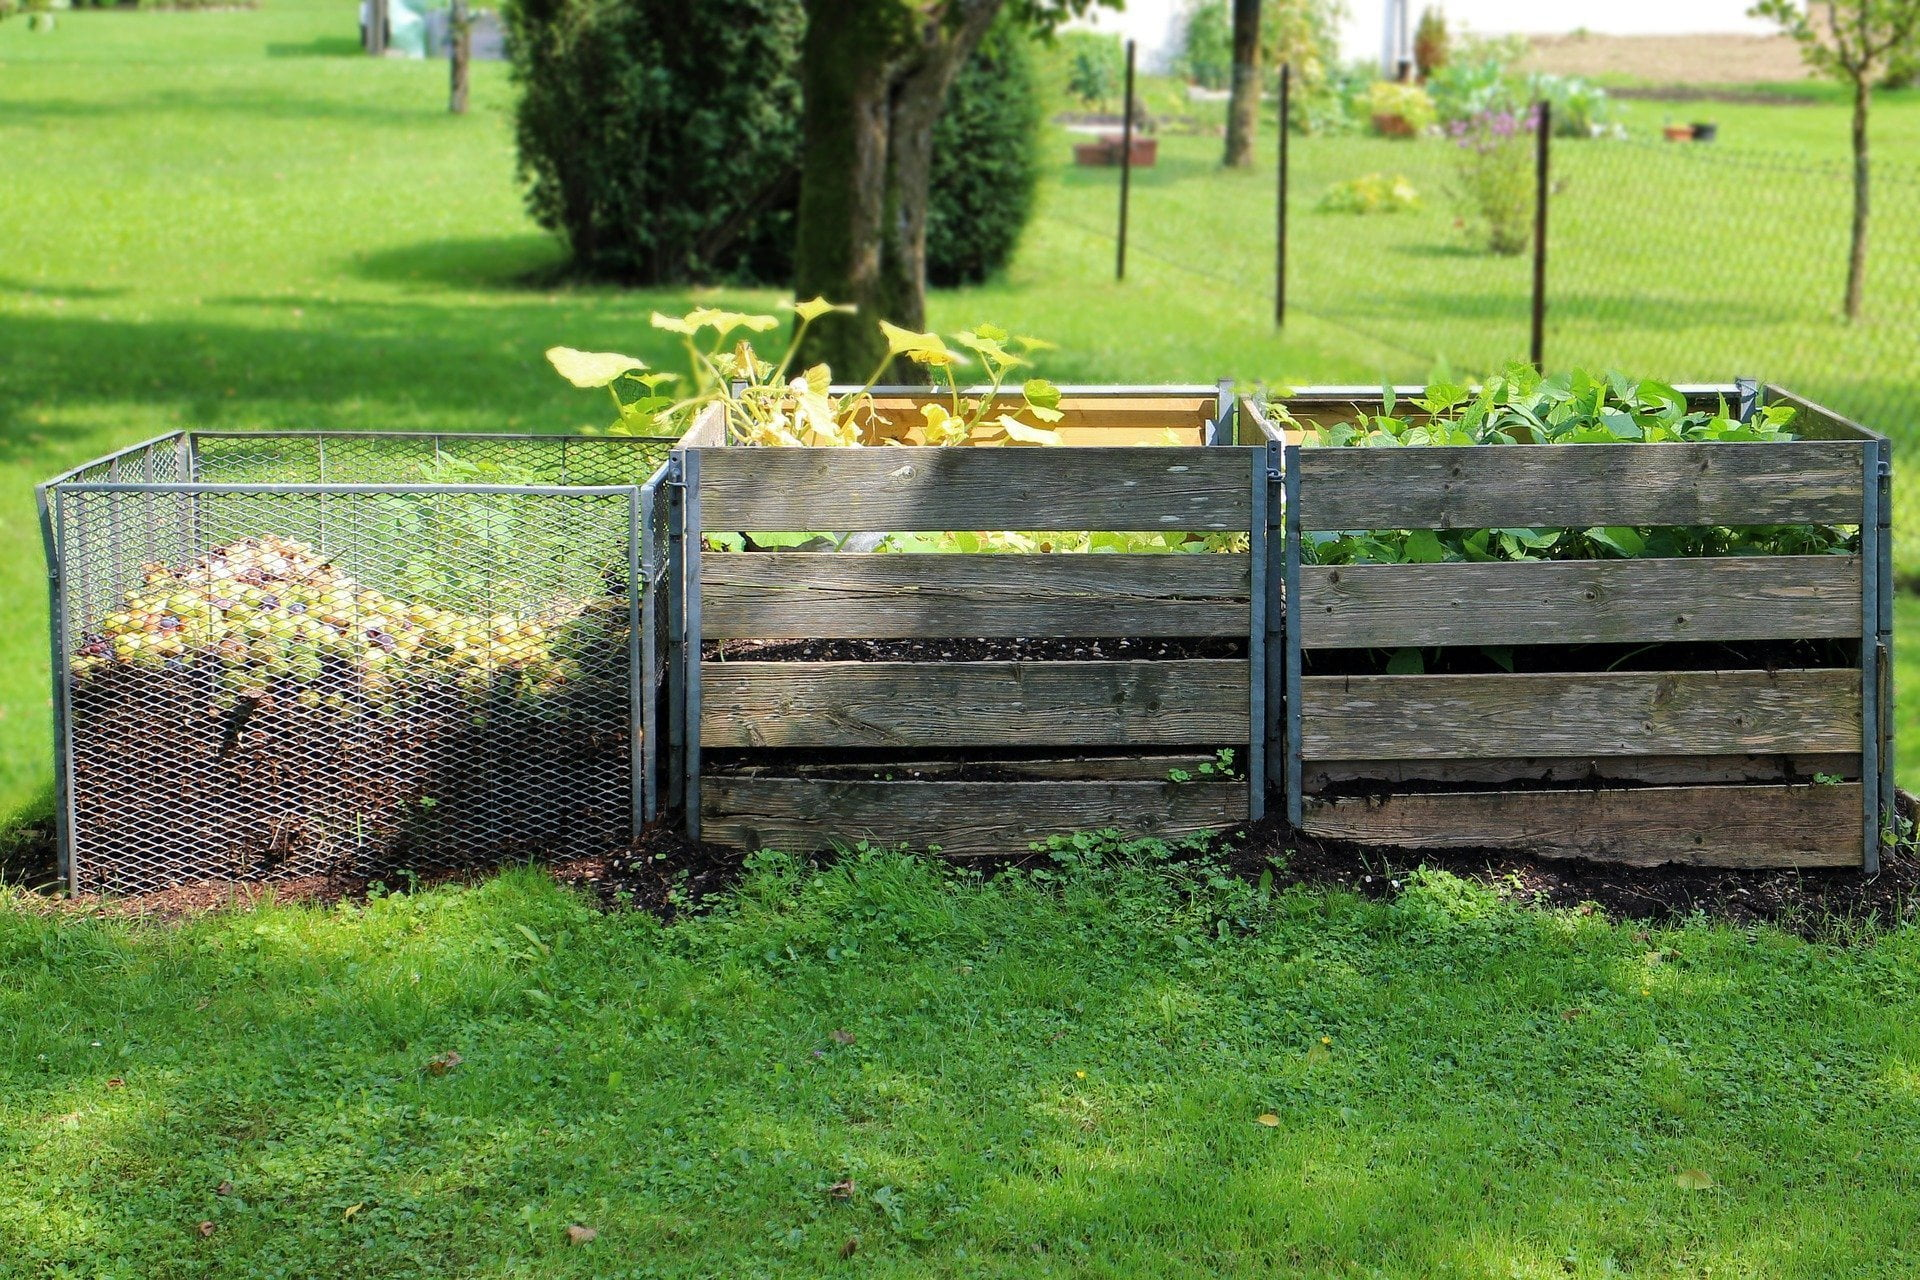 Full wooden compost bays in a row